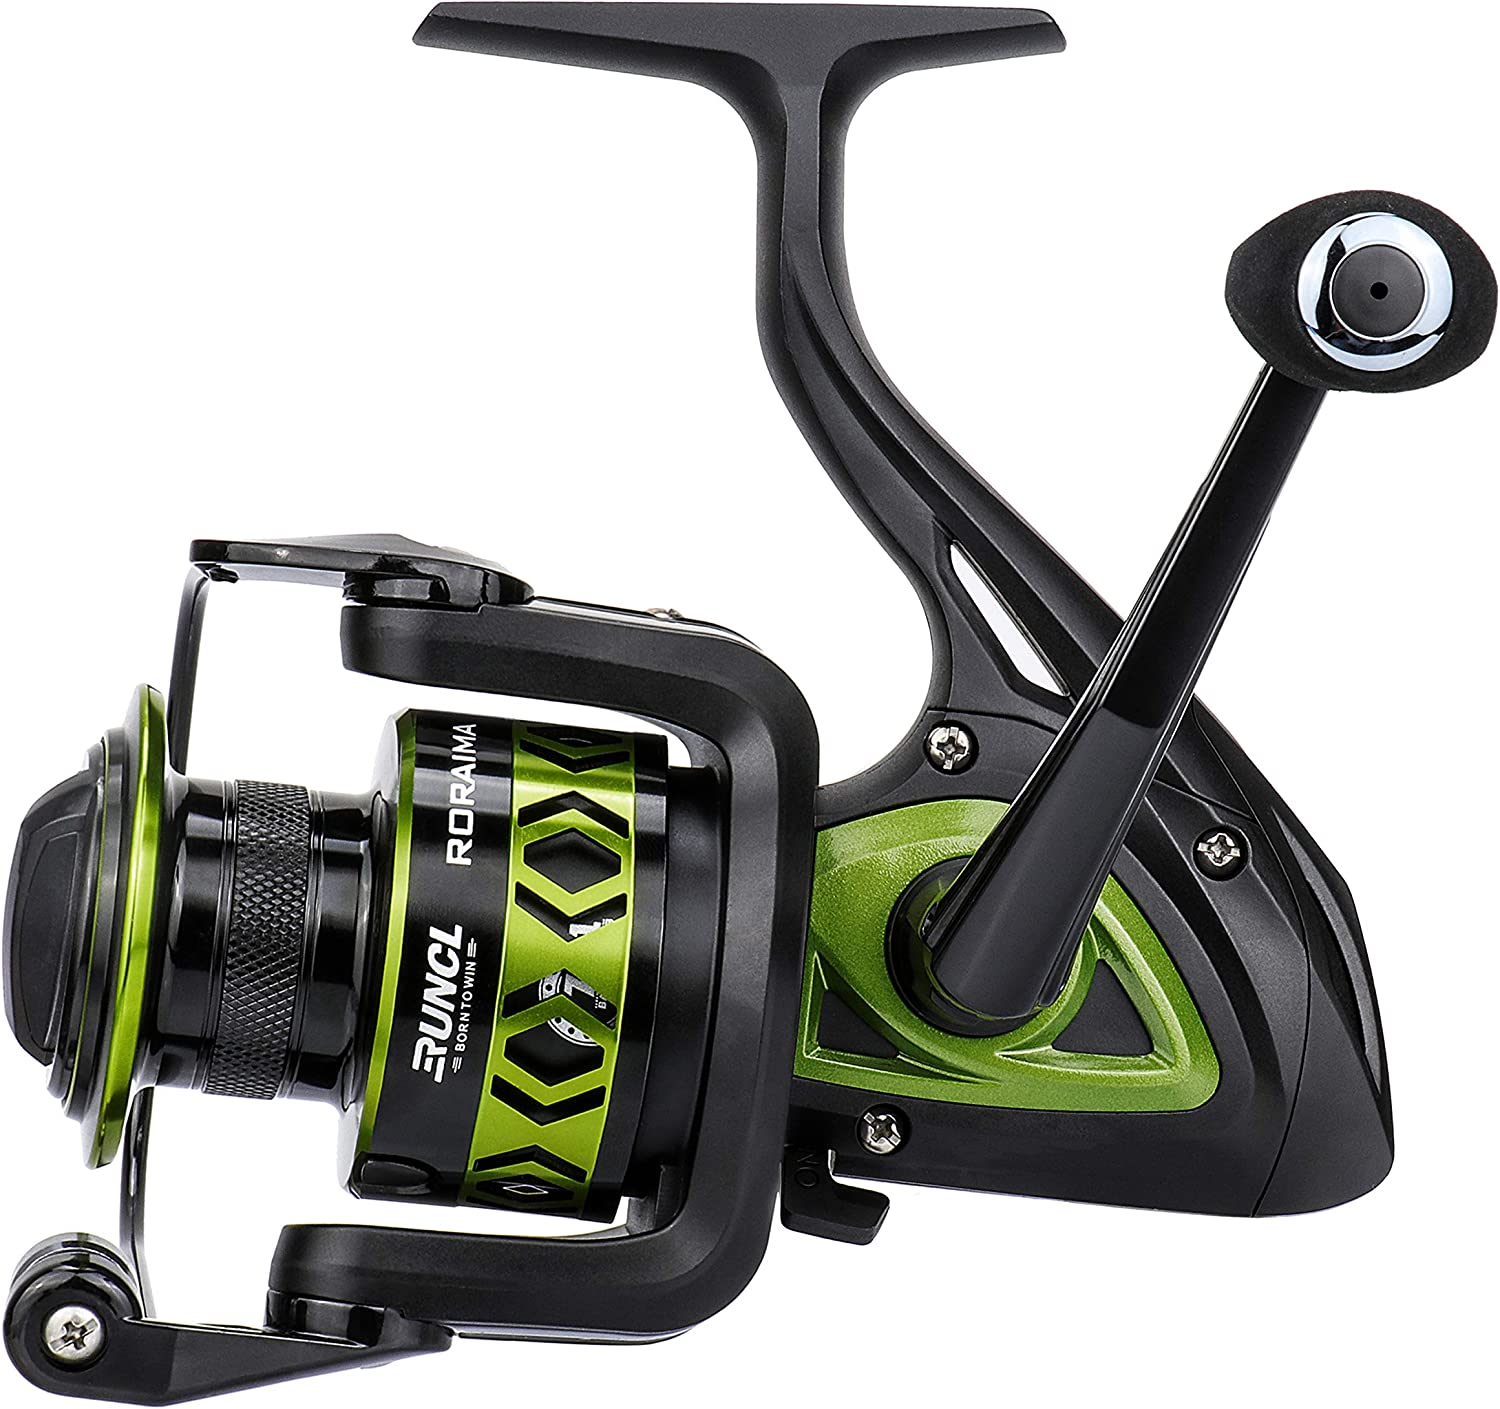 RUNCL Spinning Fishing Reel